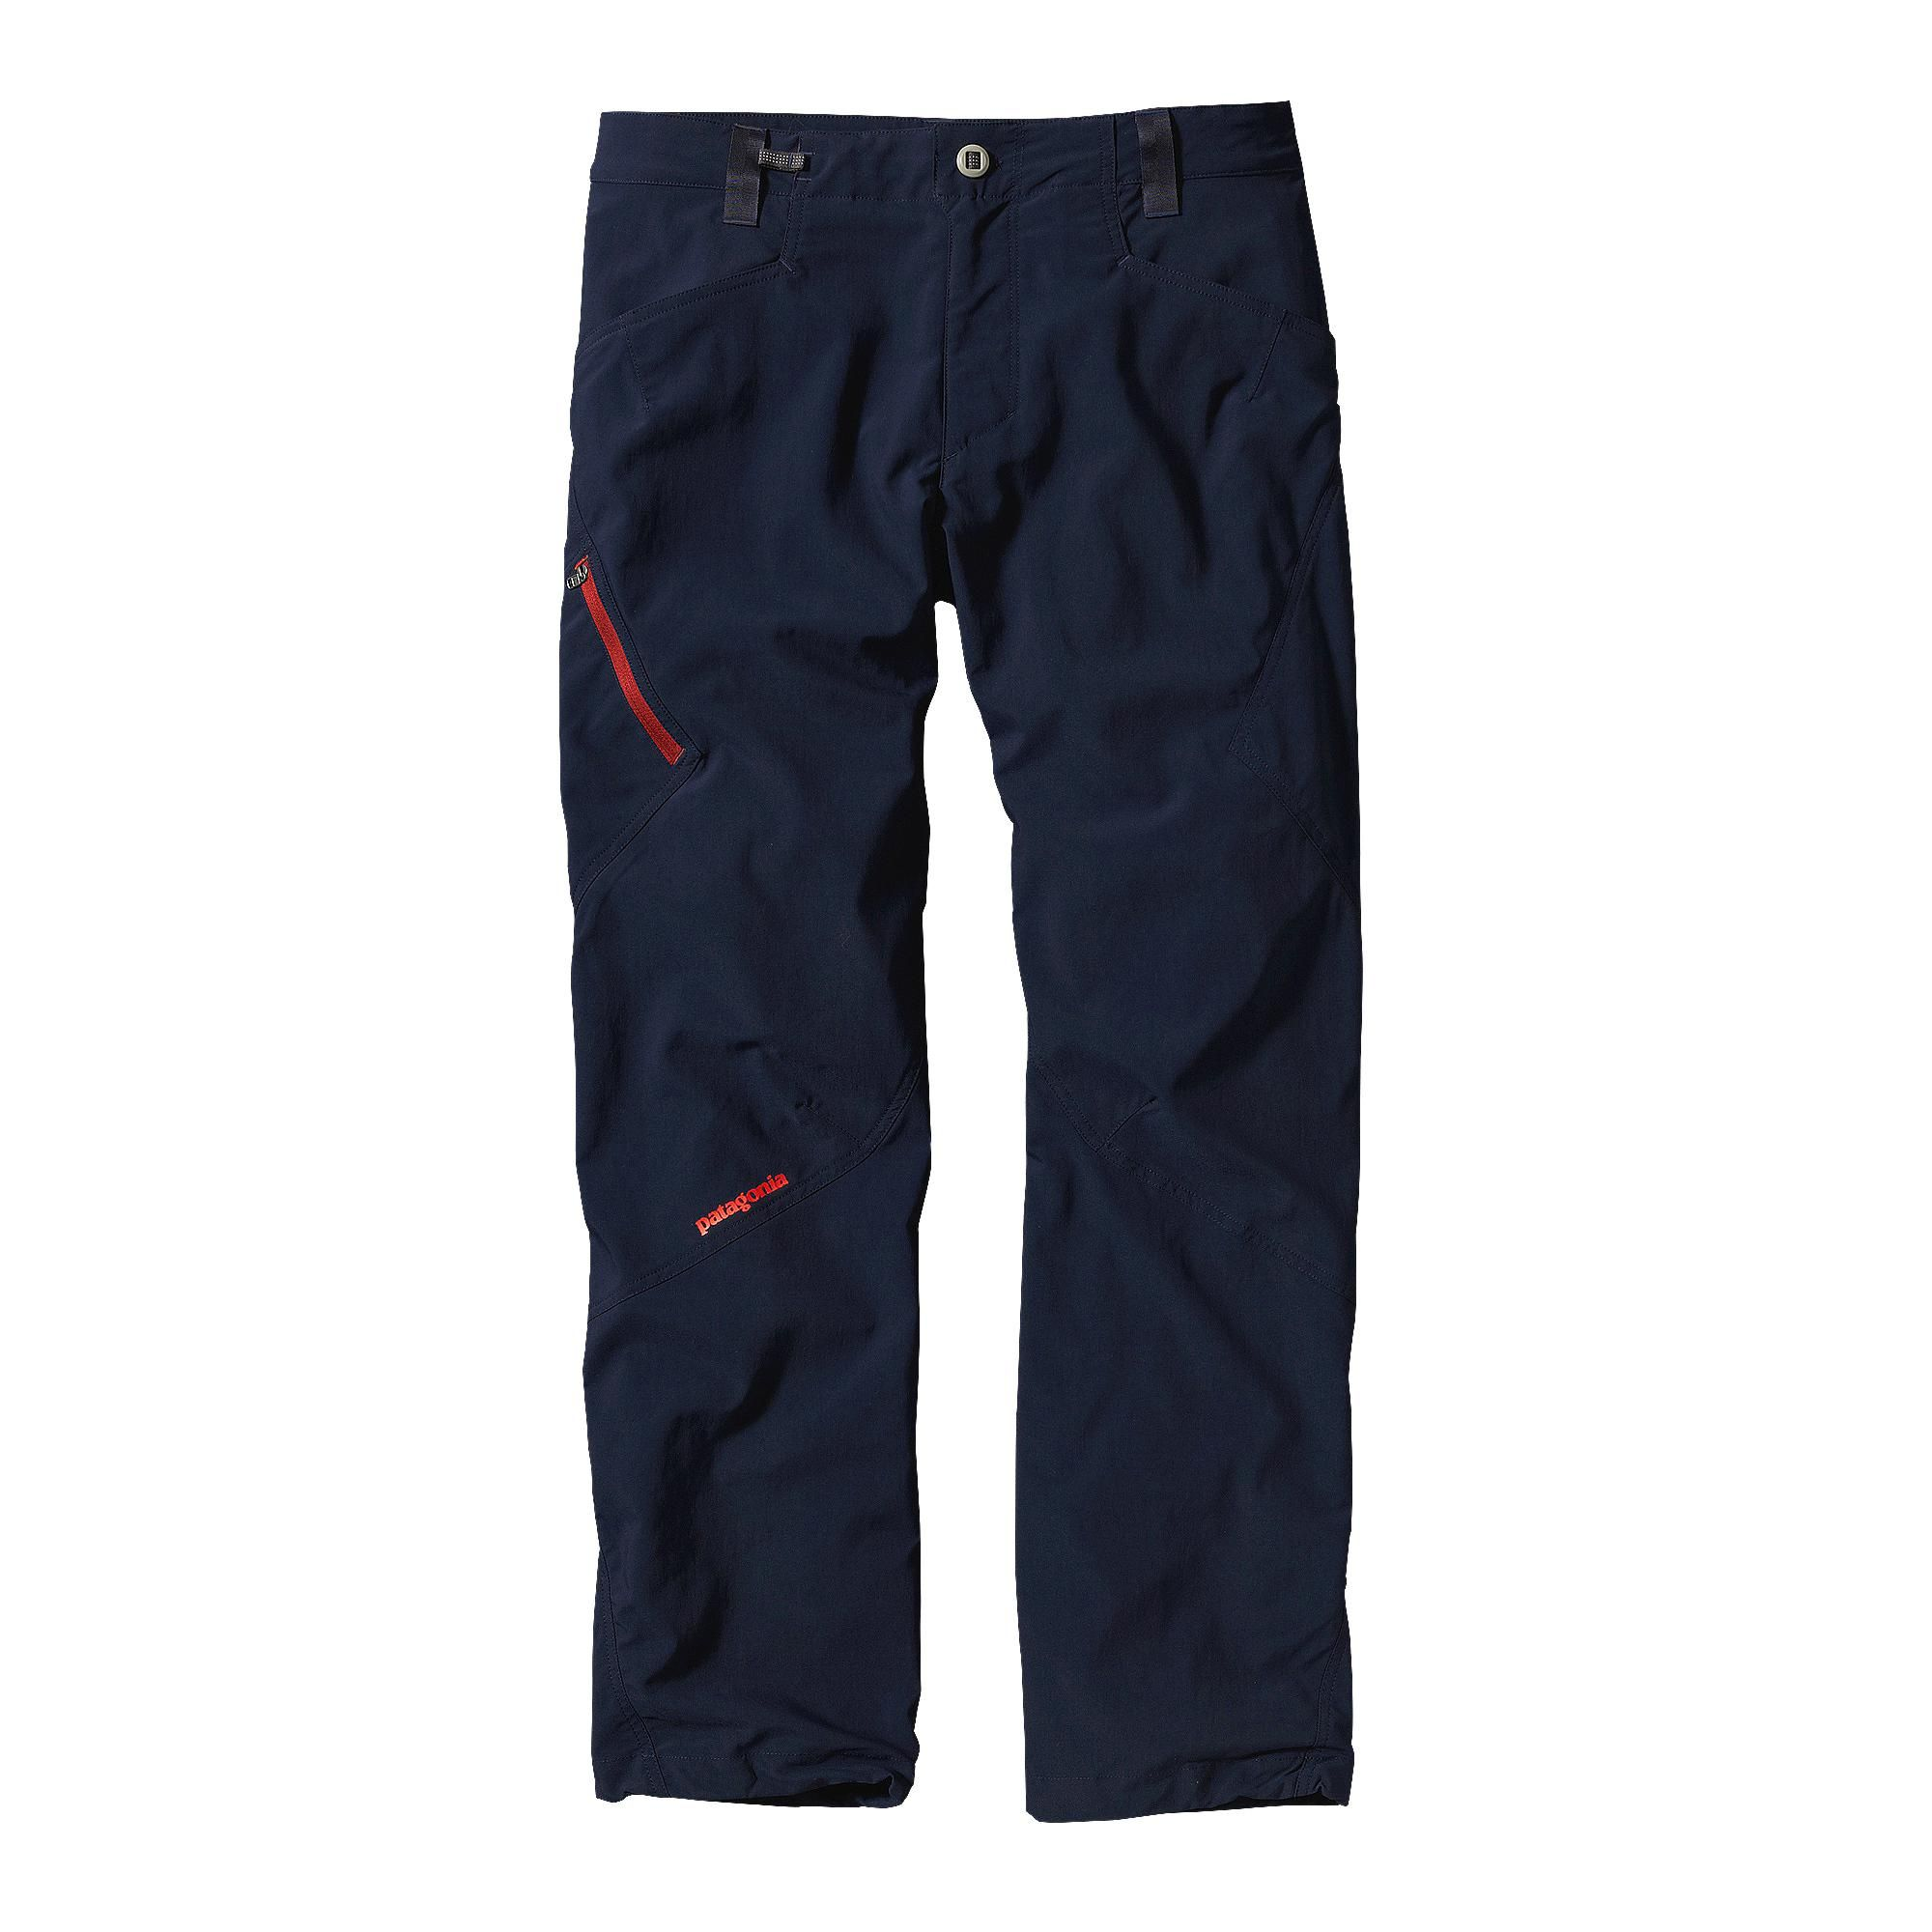 For unrestricted movement on technical routes, the Patagonia Men's RPS Rock  Pants answer back.